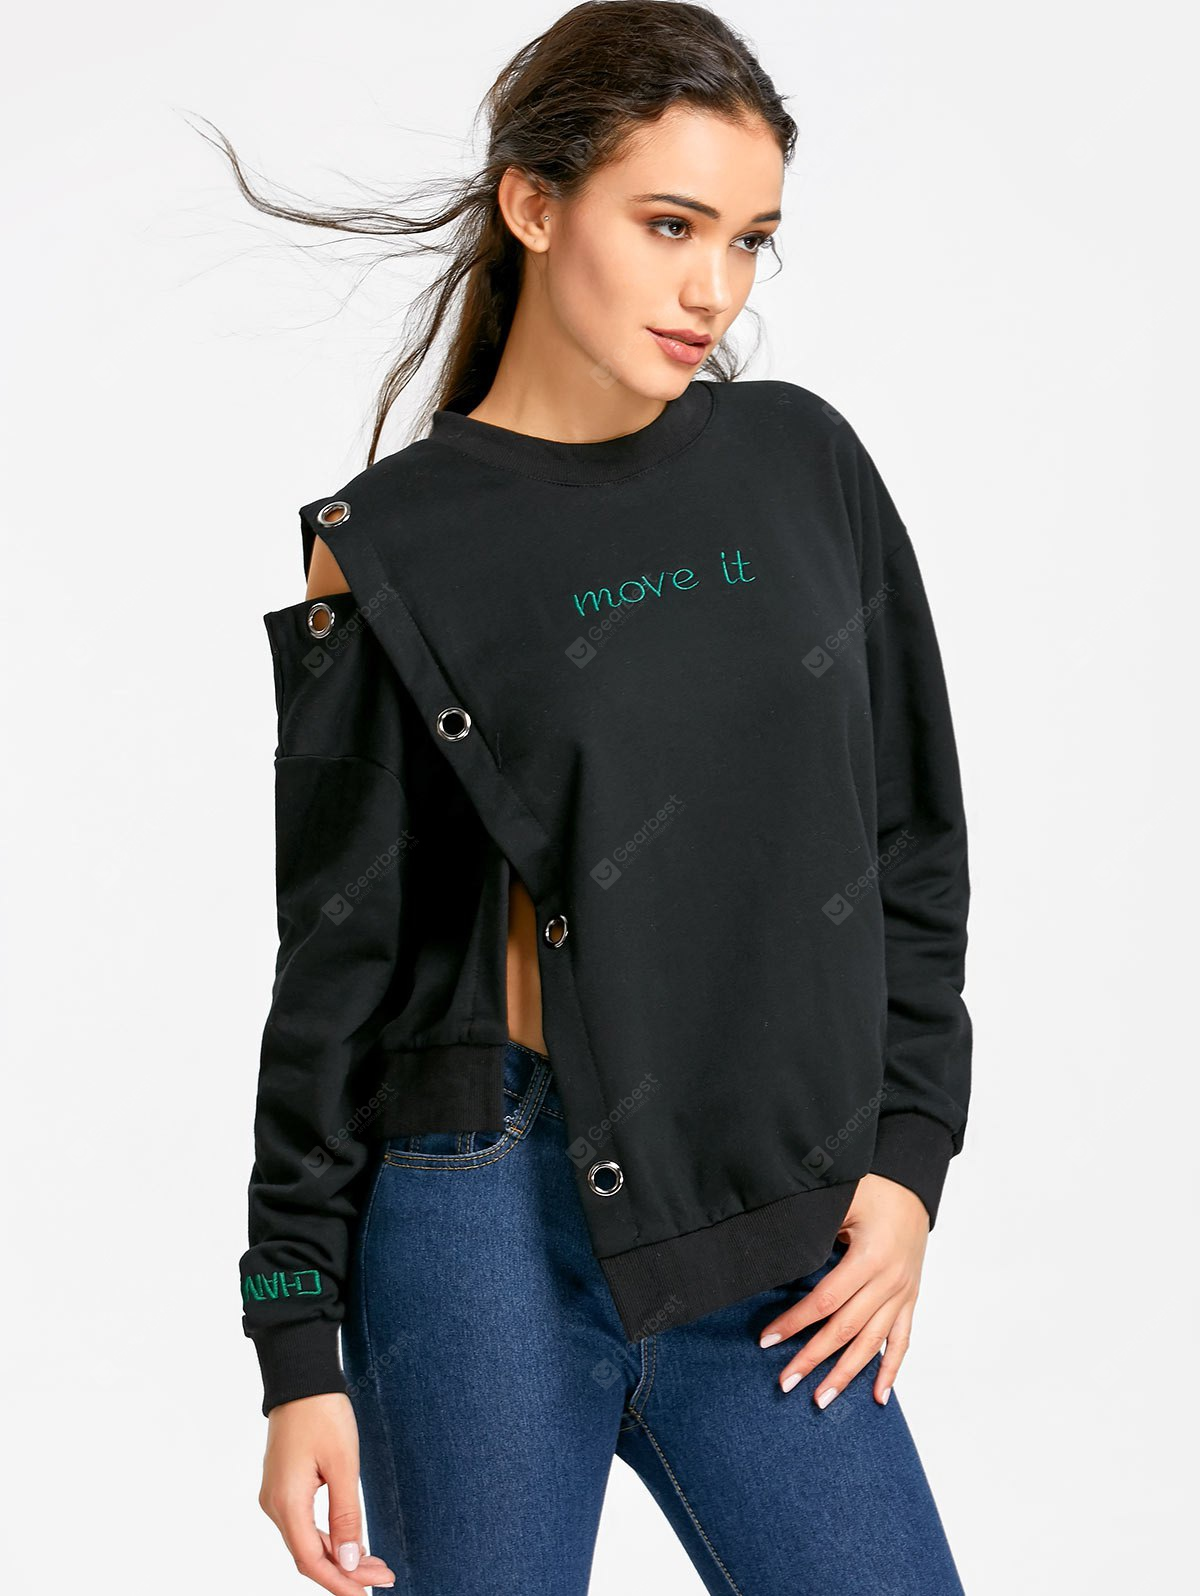 Grommet Insert Move It Asymmetrical Sweatshirt